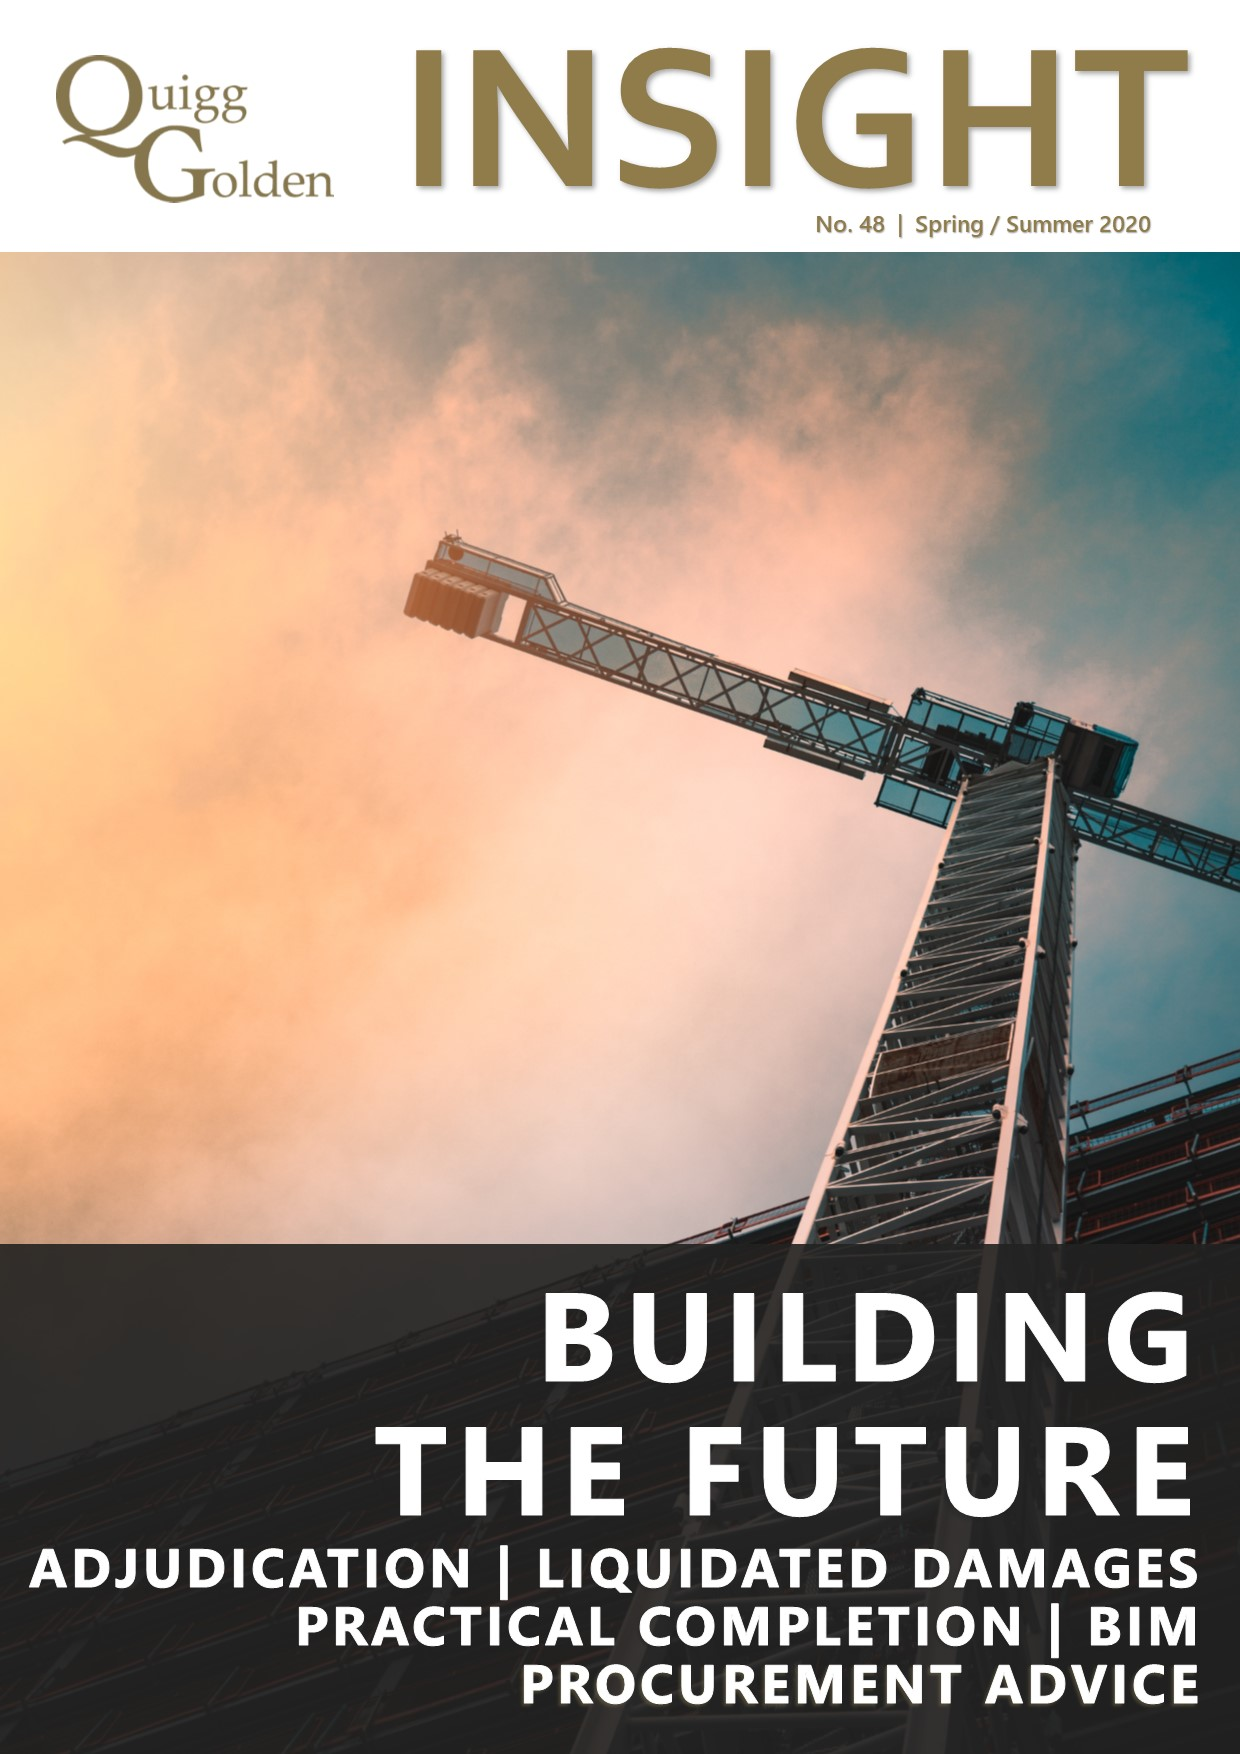 Quigg Golden Insight Newsletter - Building the Future